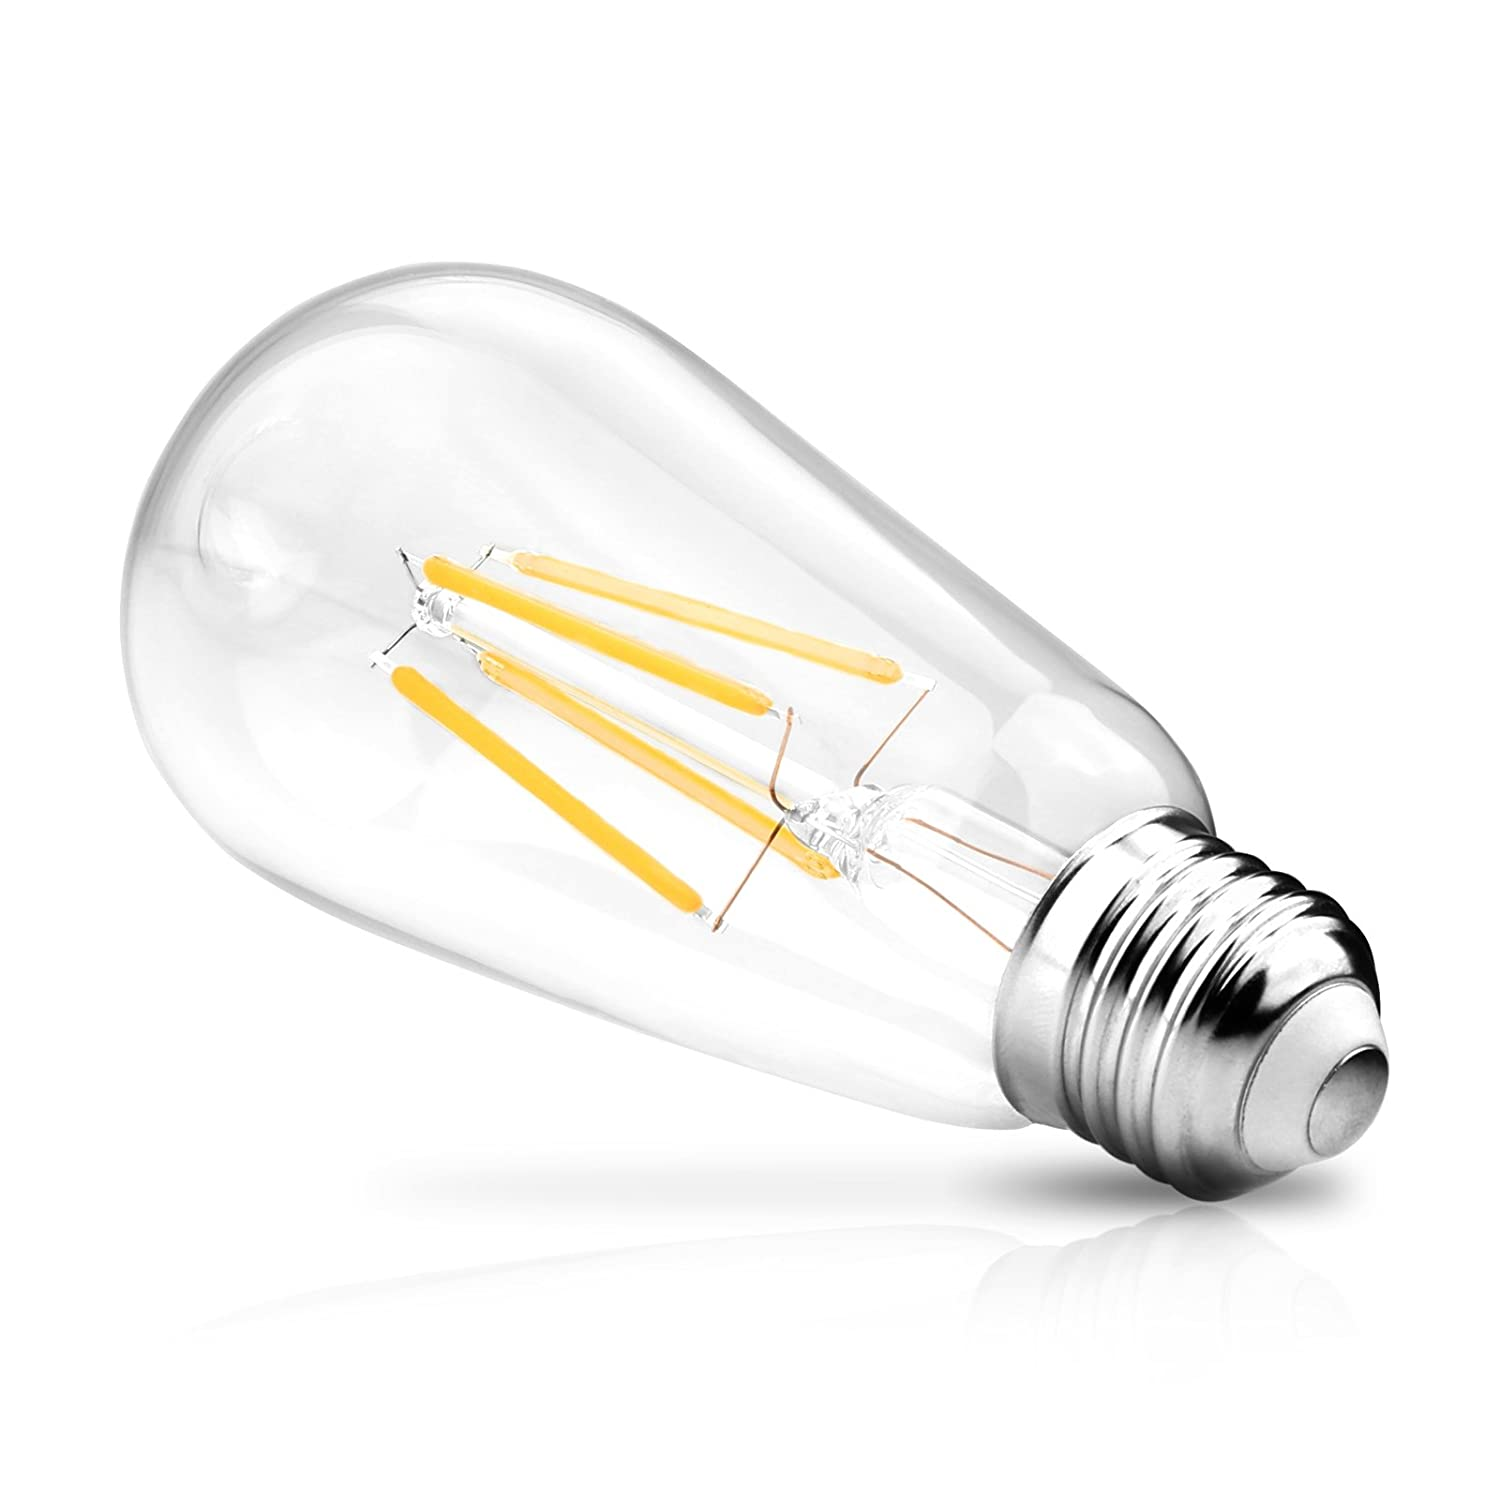 E26 Medium Base Ascher Vintage LED Edison Bulbs ST58 Antique LED Filament Bulbs Dimmable 6W 800lm Clear Glass Equivalent 60W Warm White 2700K Pack of 6